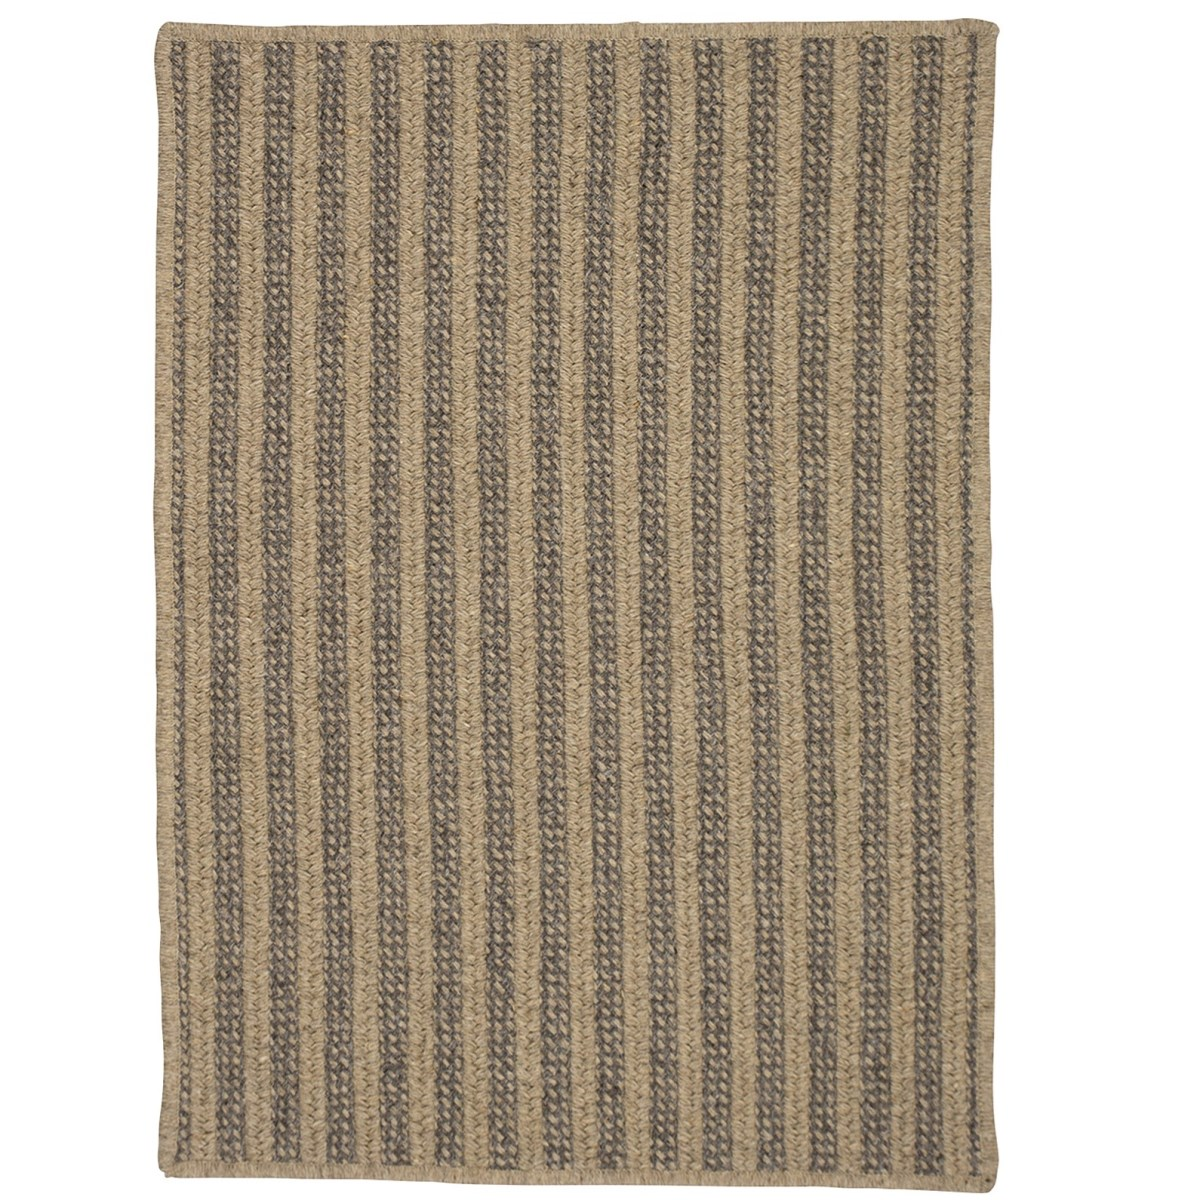 Woodland Dark Natural Wool Braided Rectangular Rugs